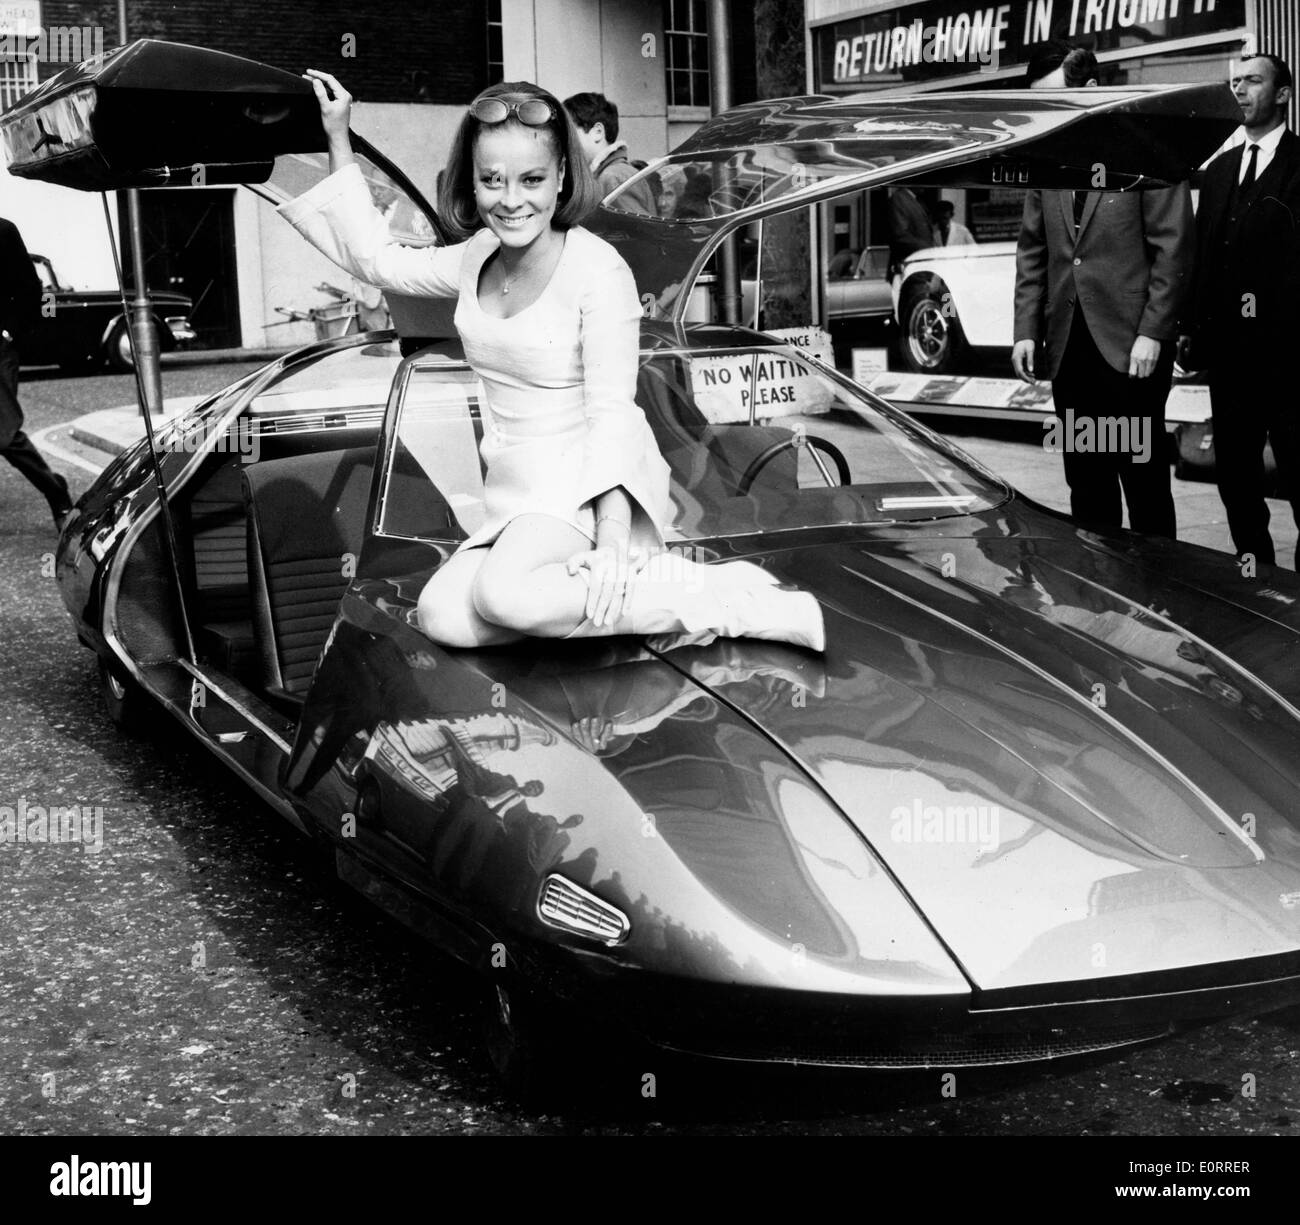 Actress Loni von Friedl with Doppelganger car - Stock Image